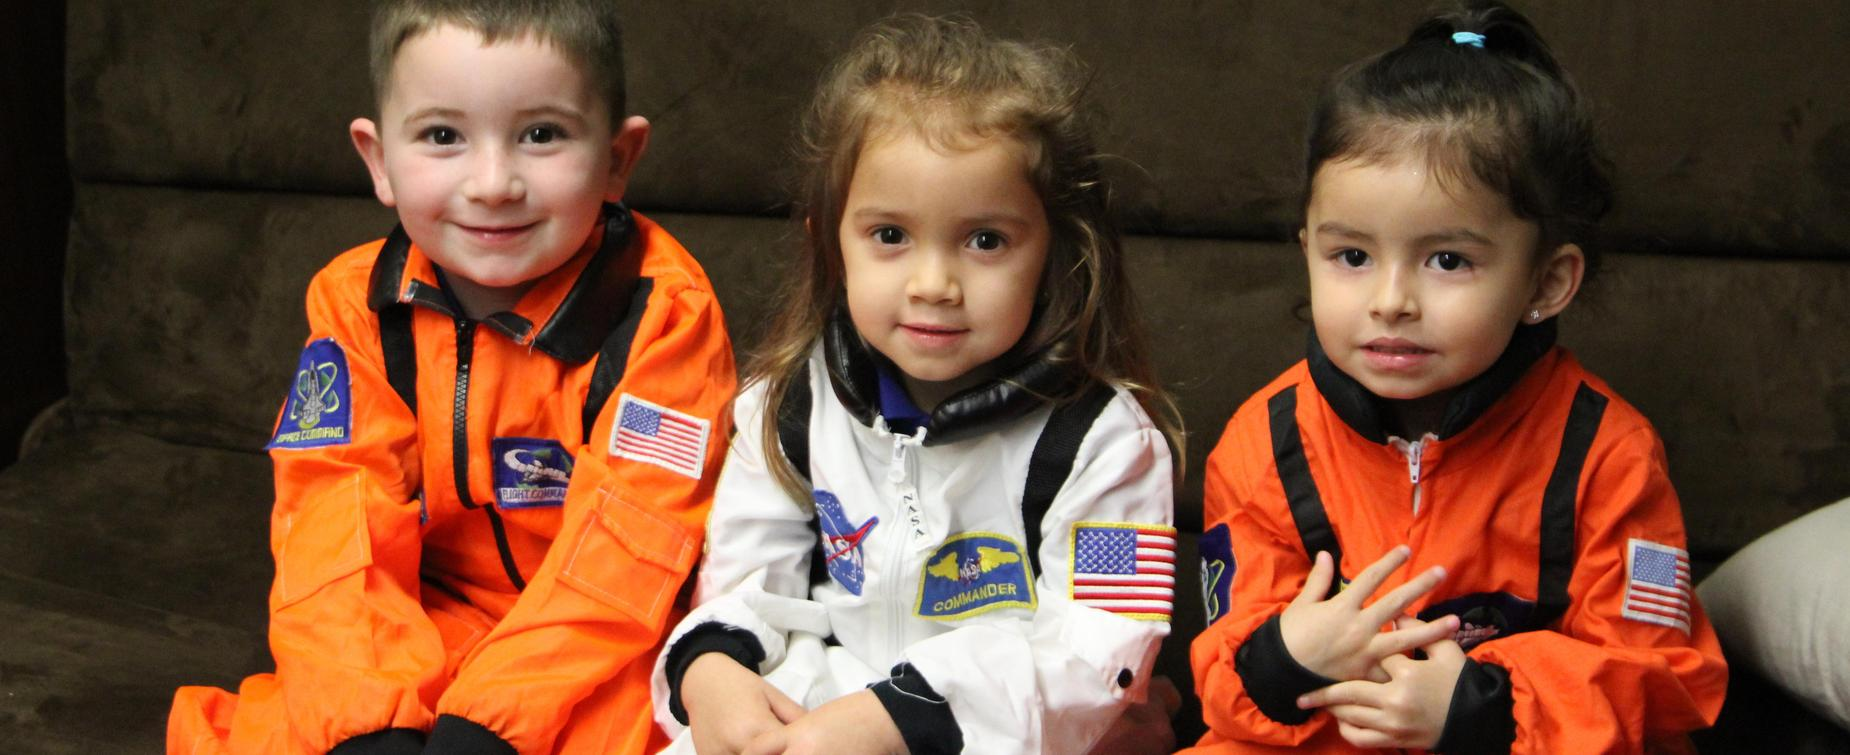 Early childhood students as astronauts